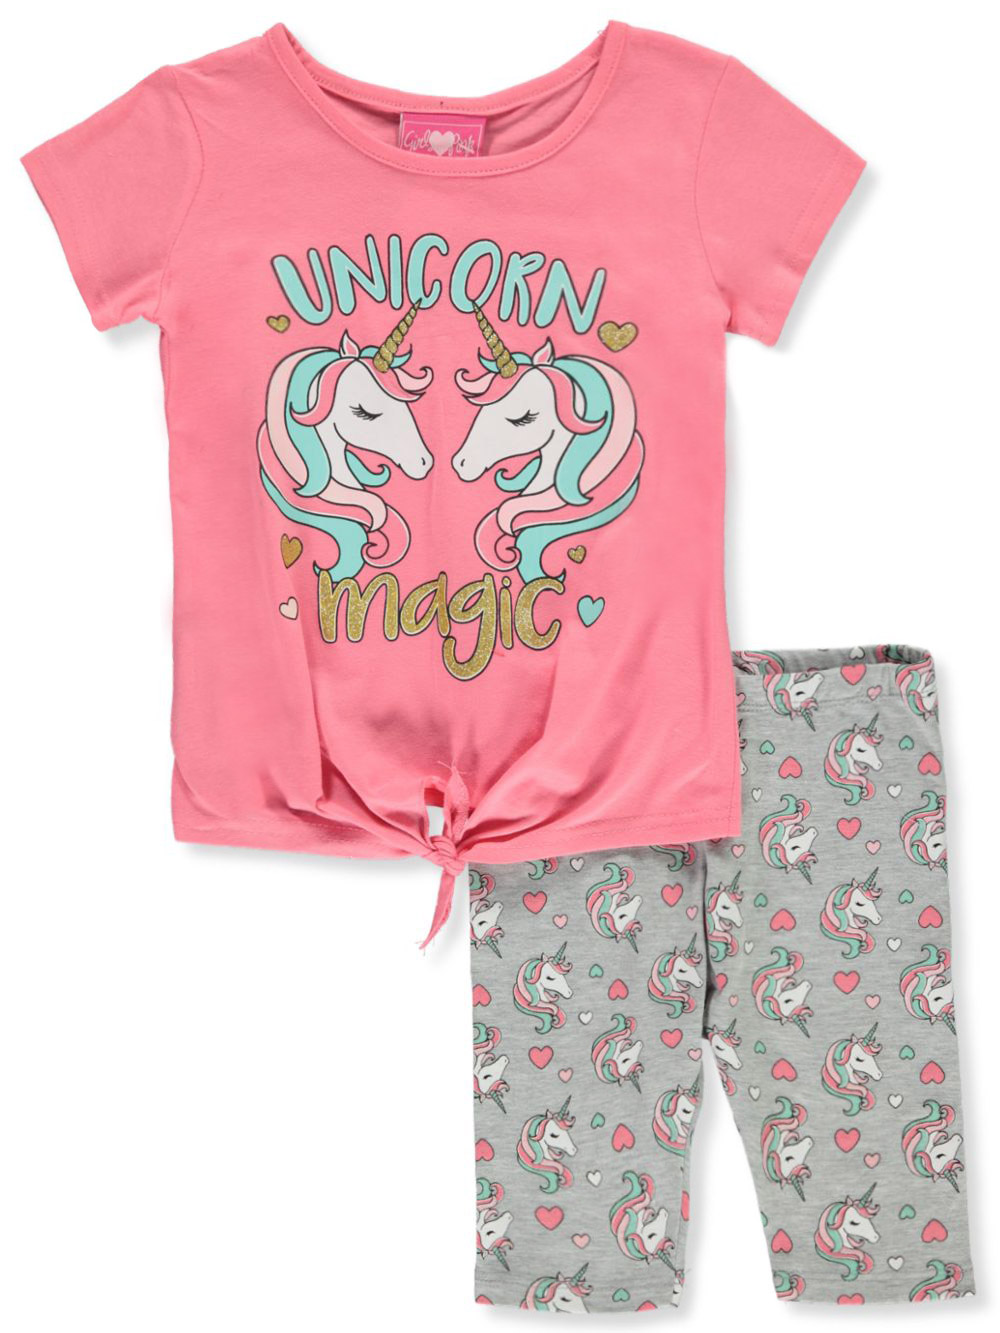 Sizes 4-6x 2-Piece Leggings Set Outfit